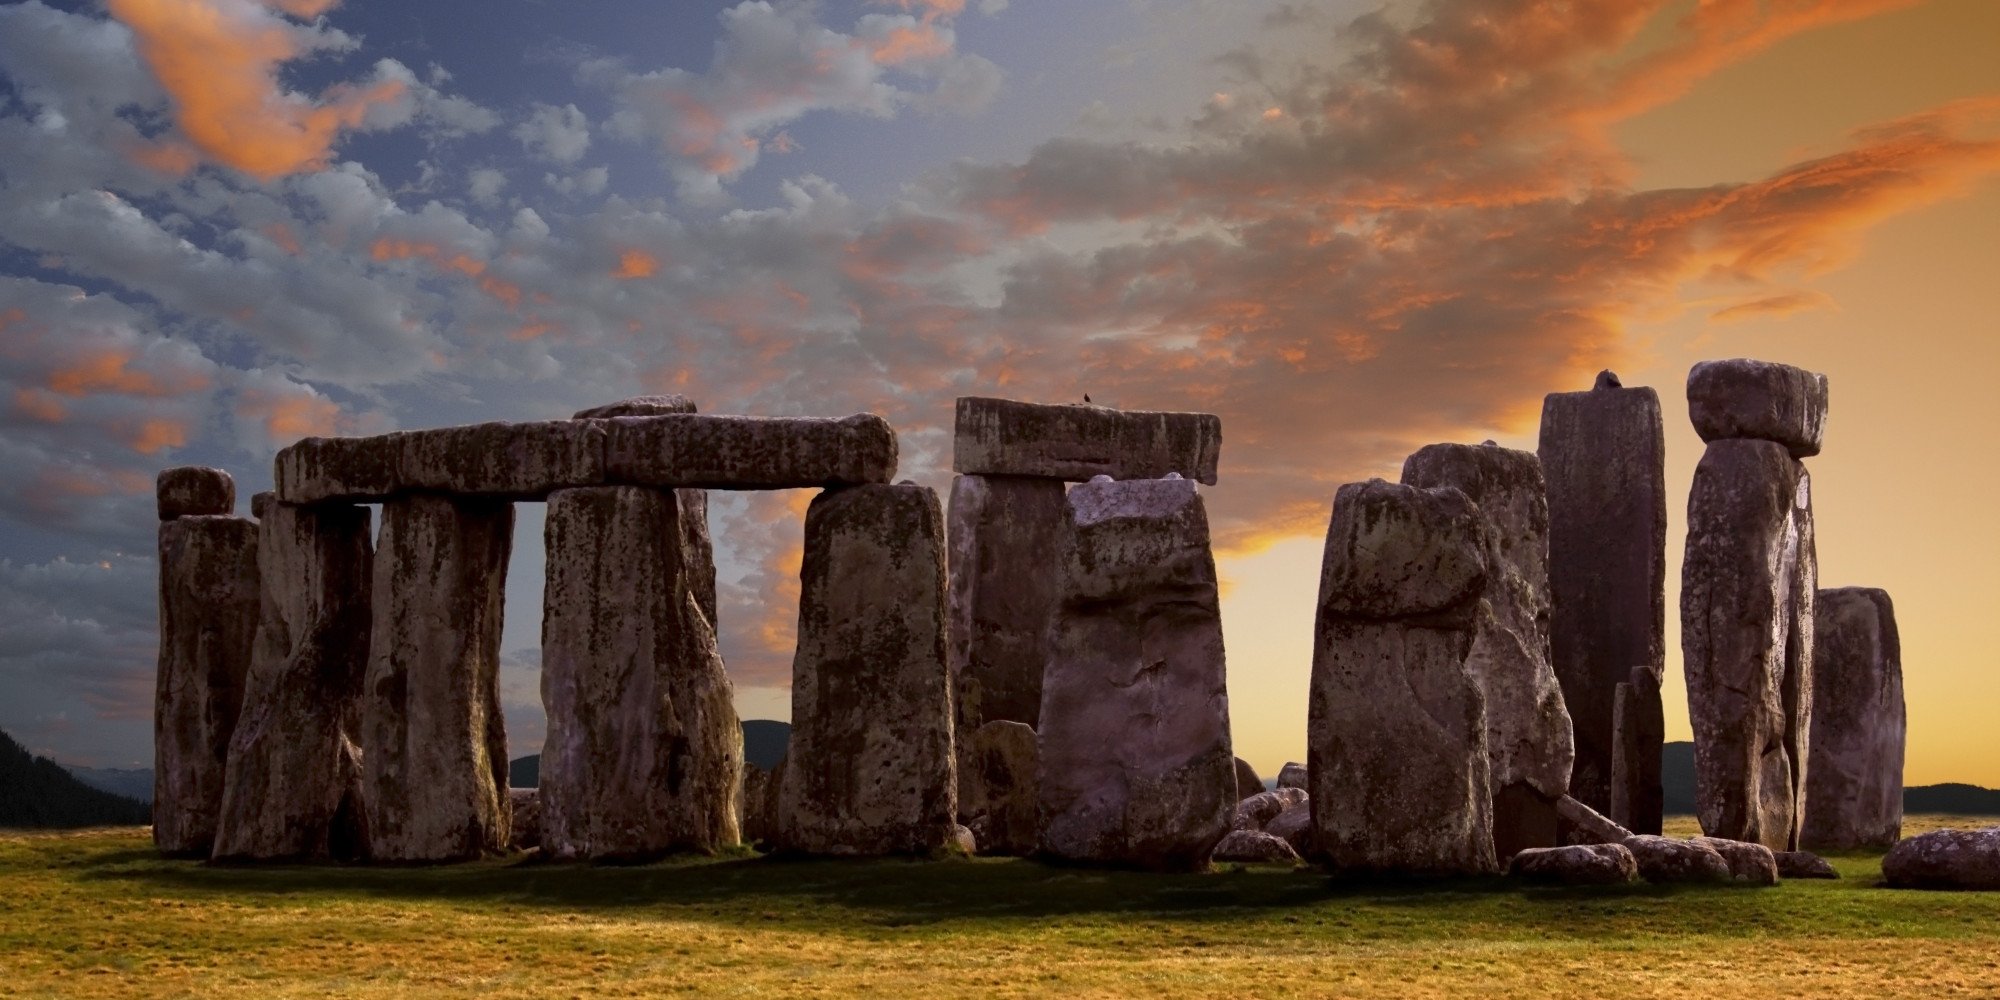 New Controversial Idea About Stonehenge Has Archaeologists Shaking Their Heads